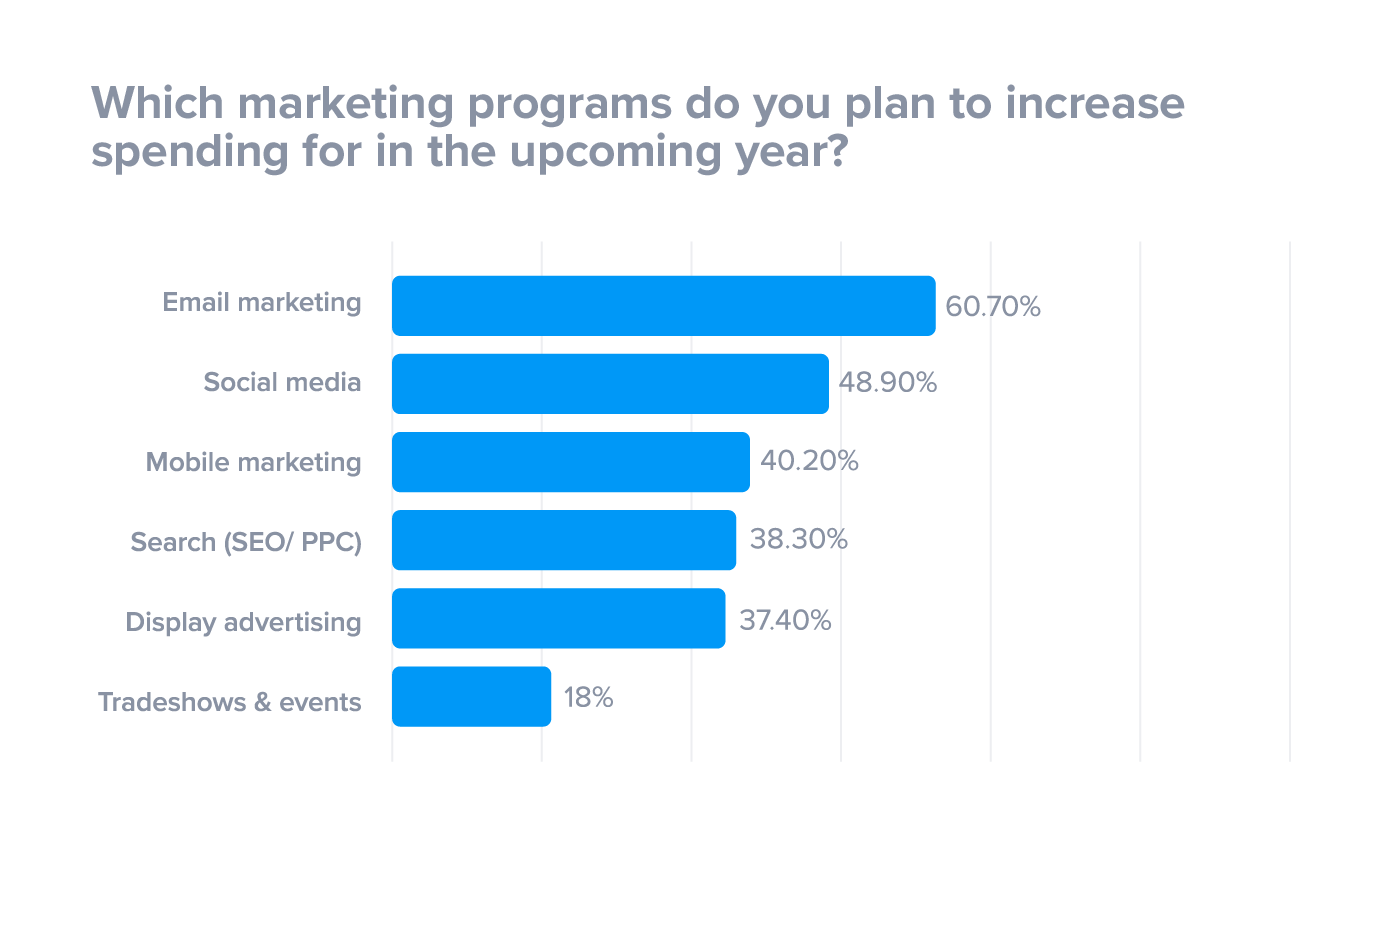 Top digital marketing priorities for 2018